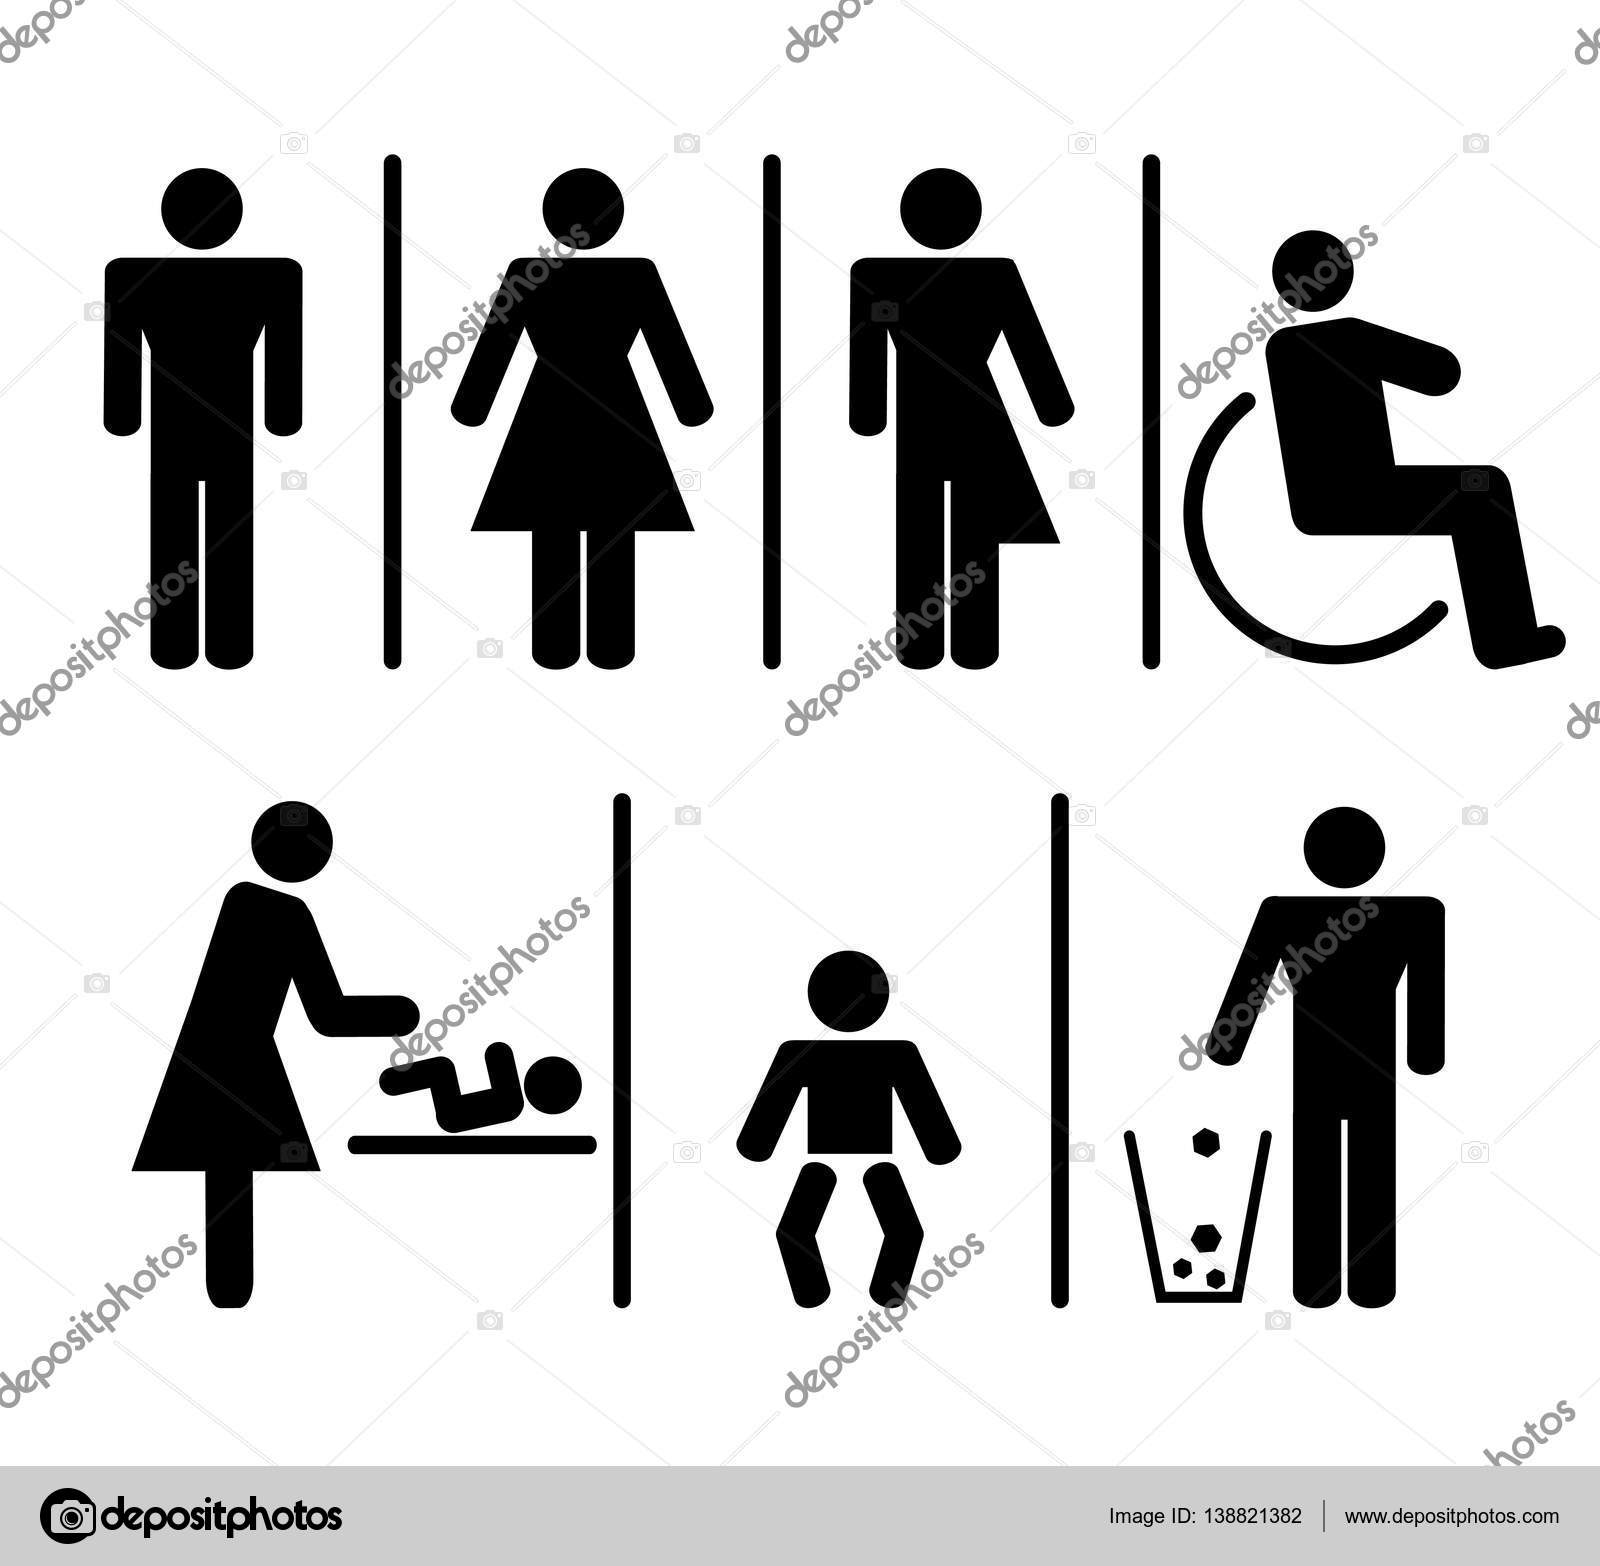 Toilet Restroom And WC Signs For Men Women Trans Gender Disabled Baby Care Garbage